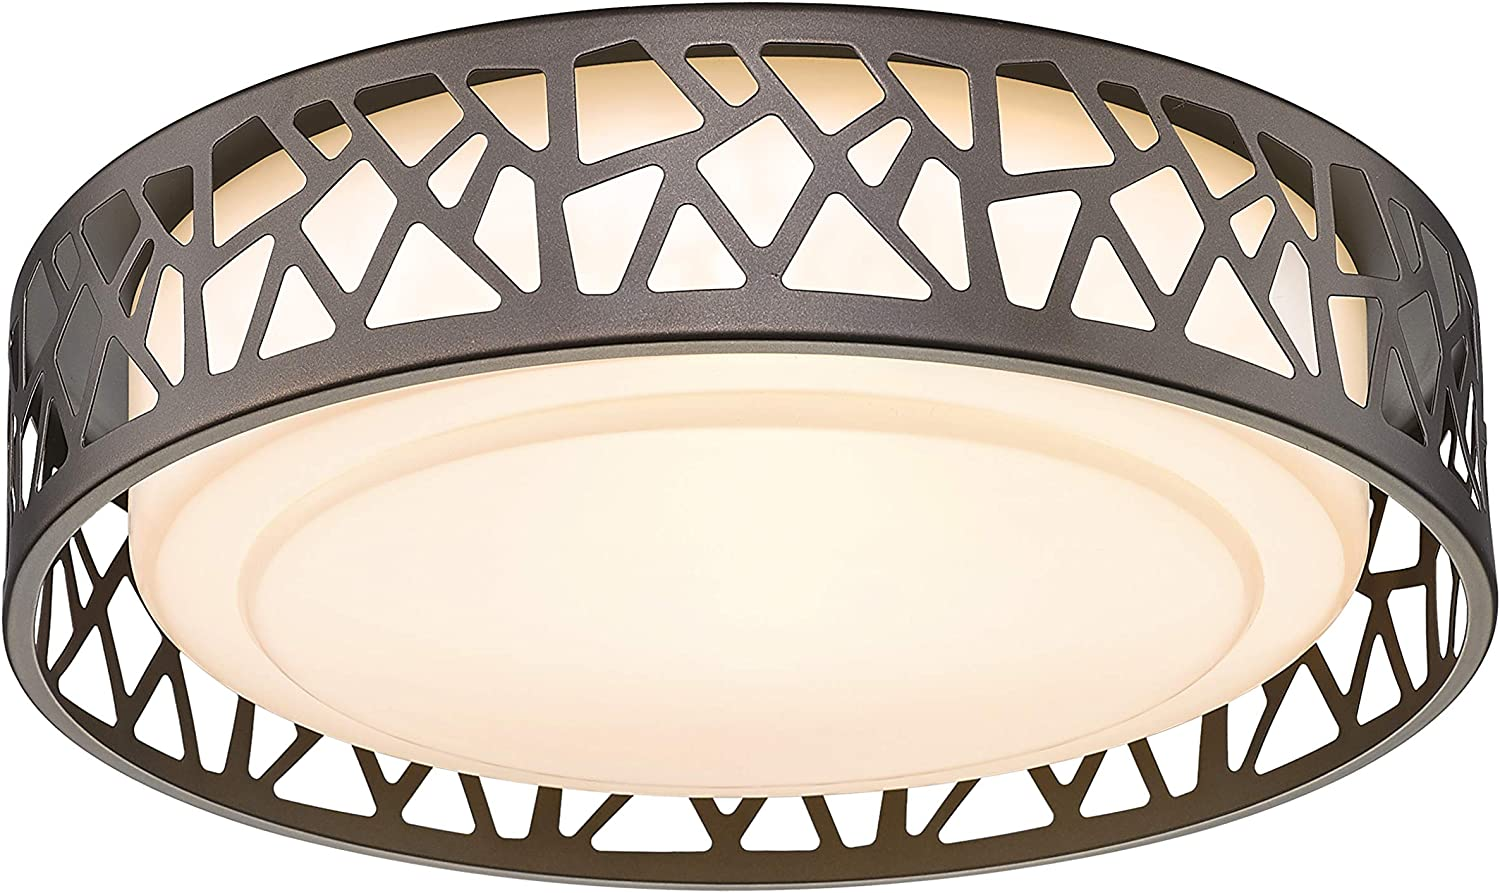 VINCIE Flush Mount Ceiling Light